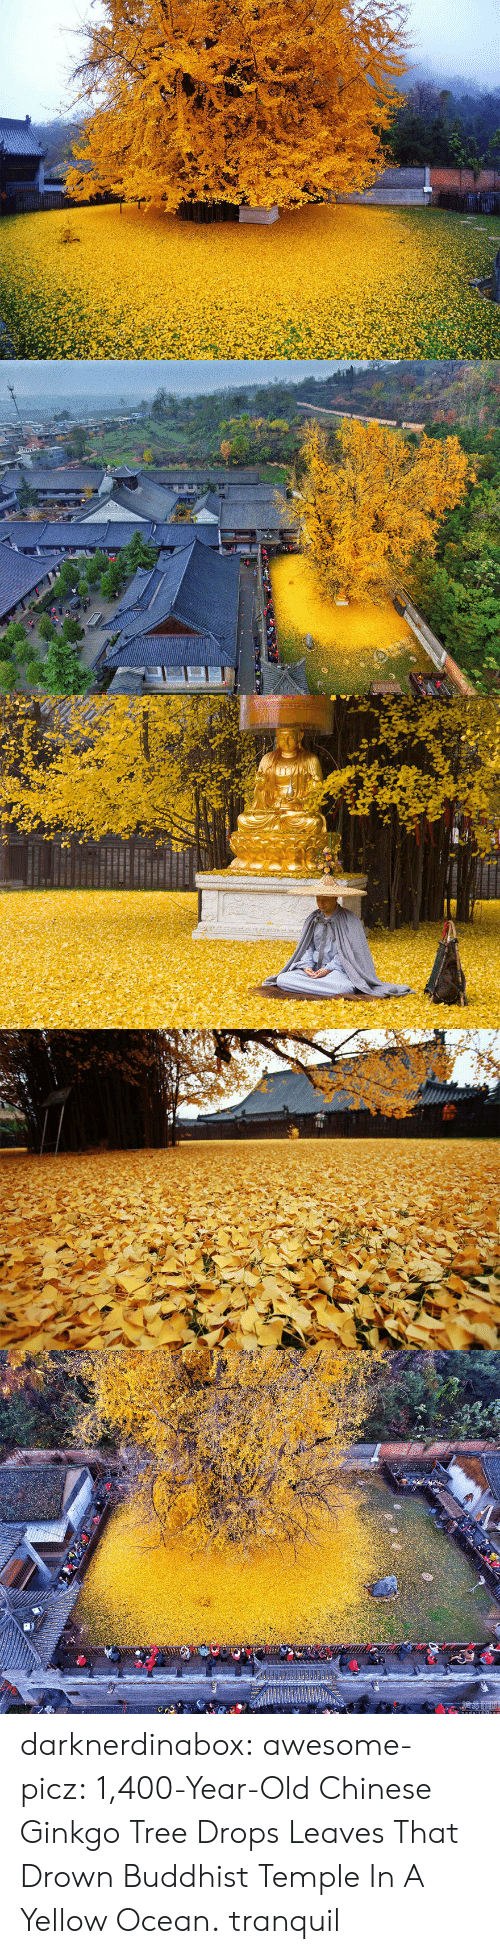 buddhist: darknerdinabox:  awesome-picz:    1,400-Year-Old Chinese Ginkgo Tree Drops Leaves That Drown Buddhist Temple In A Yellow Ocean.  tranquil